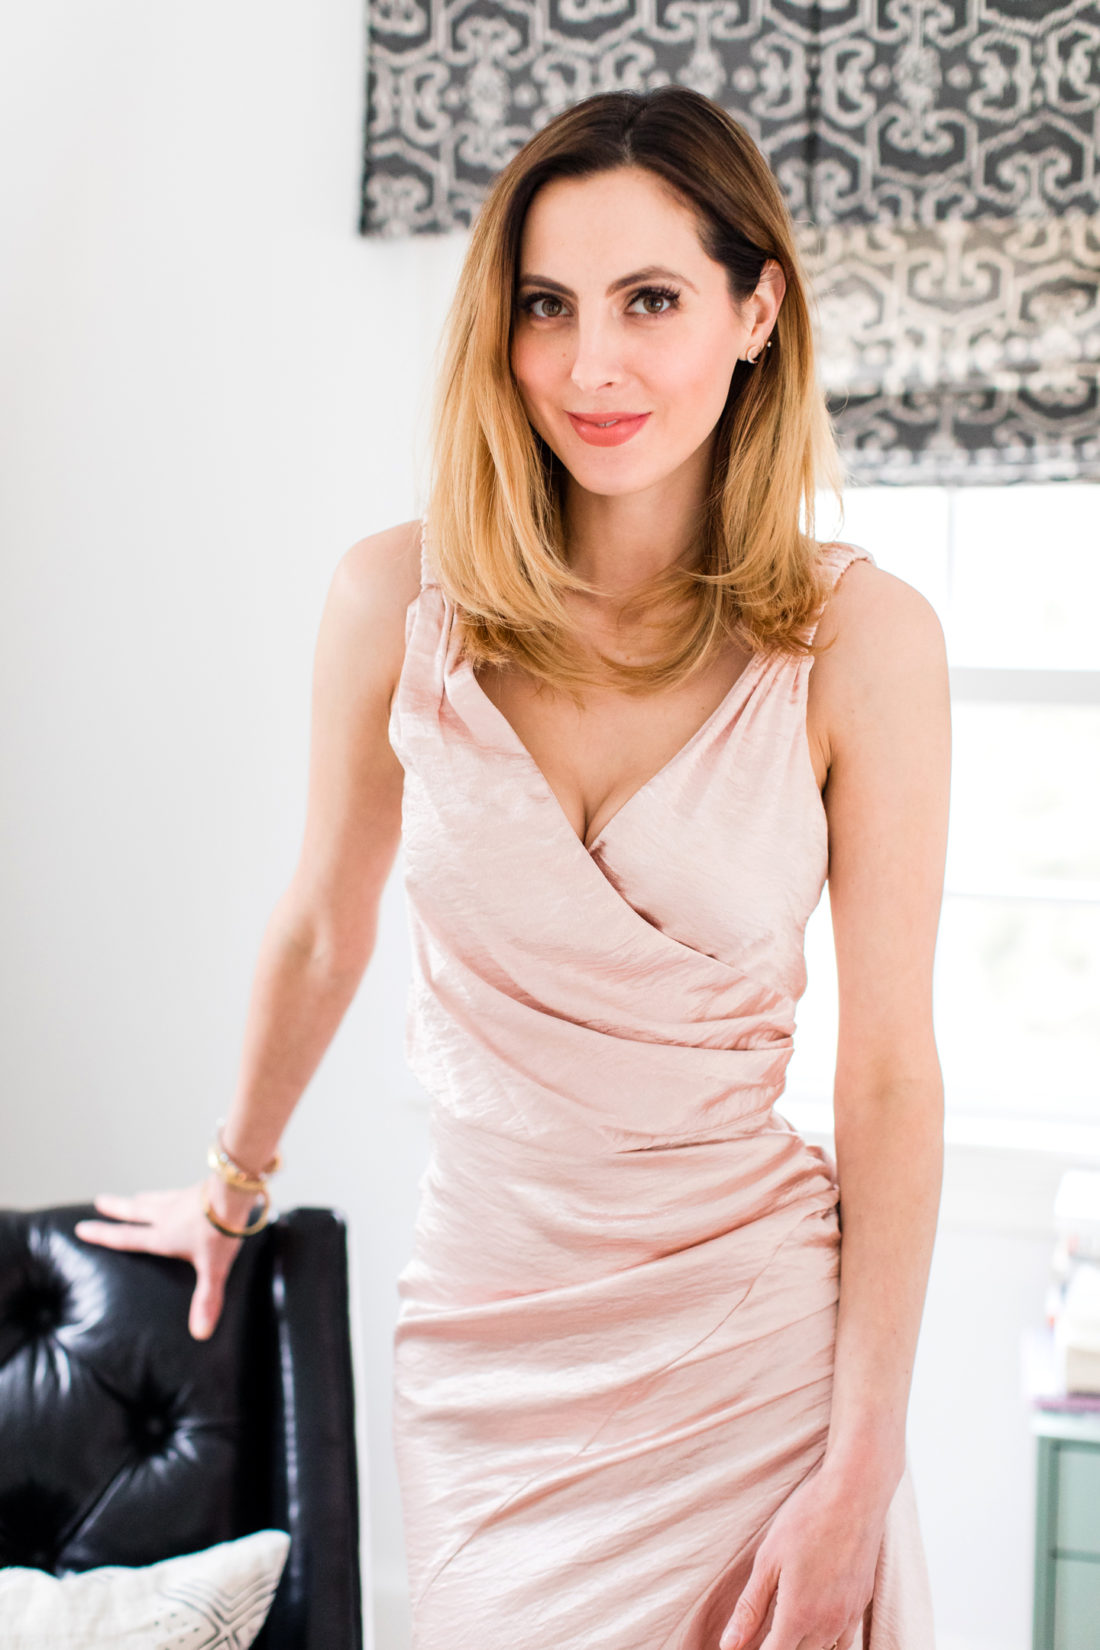 bc3b1b1b62 Eva Amurri Martino wears a silk romantic dress for Date NIght